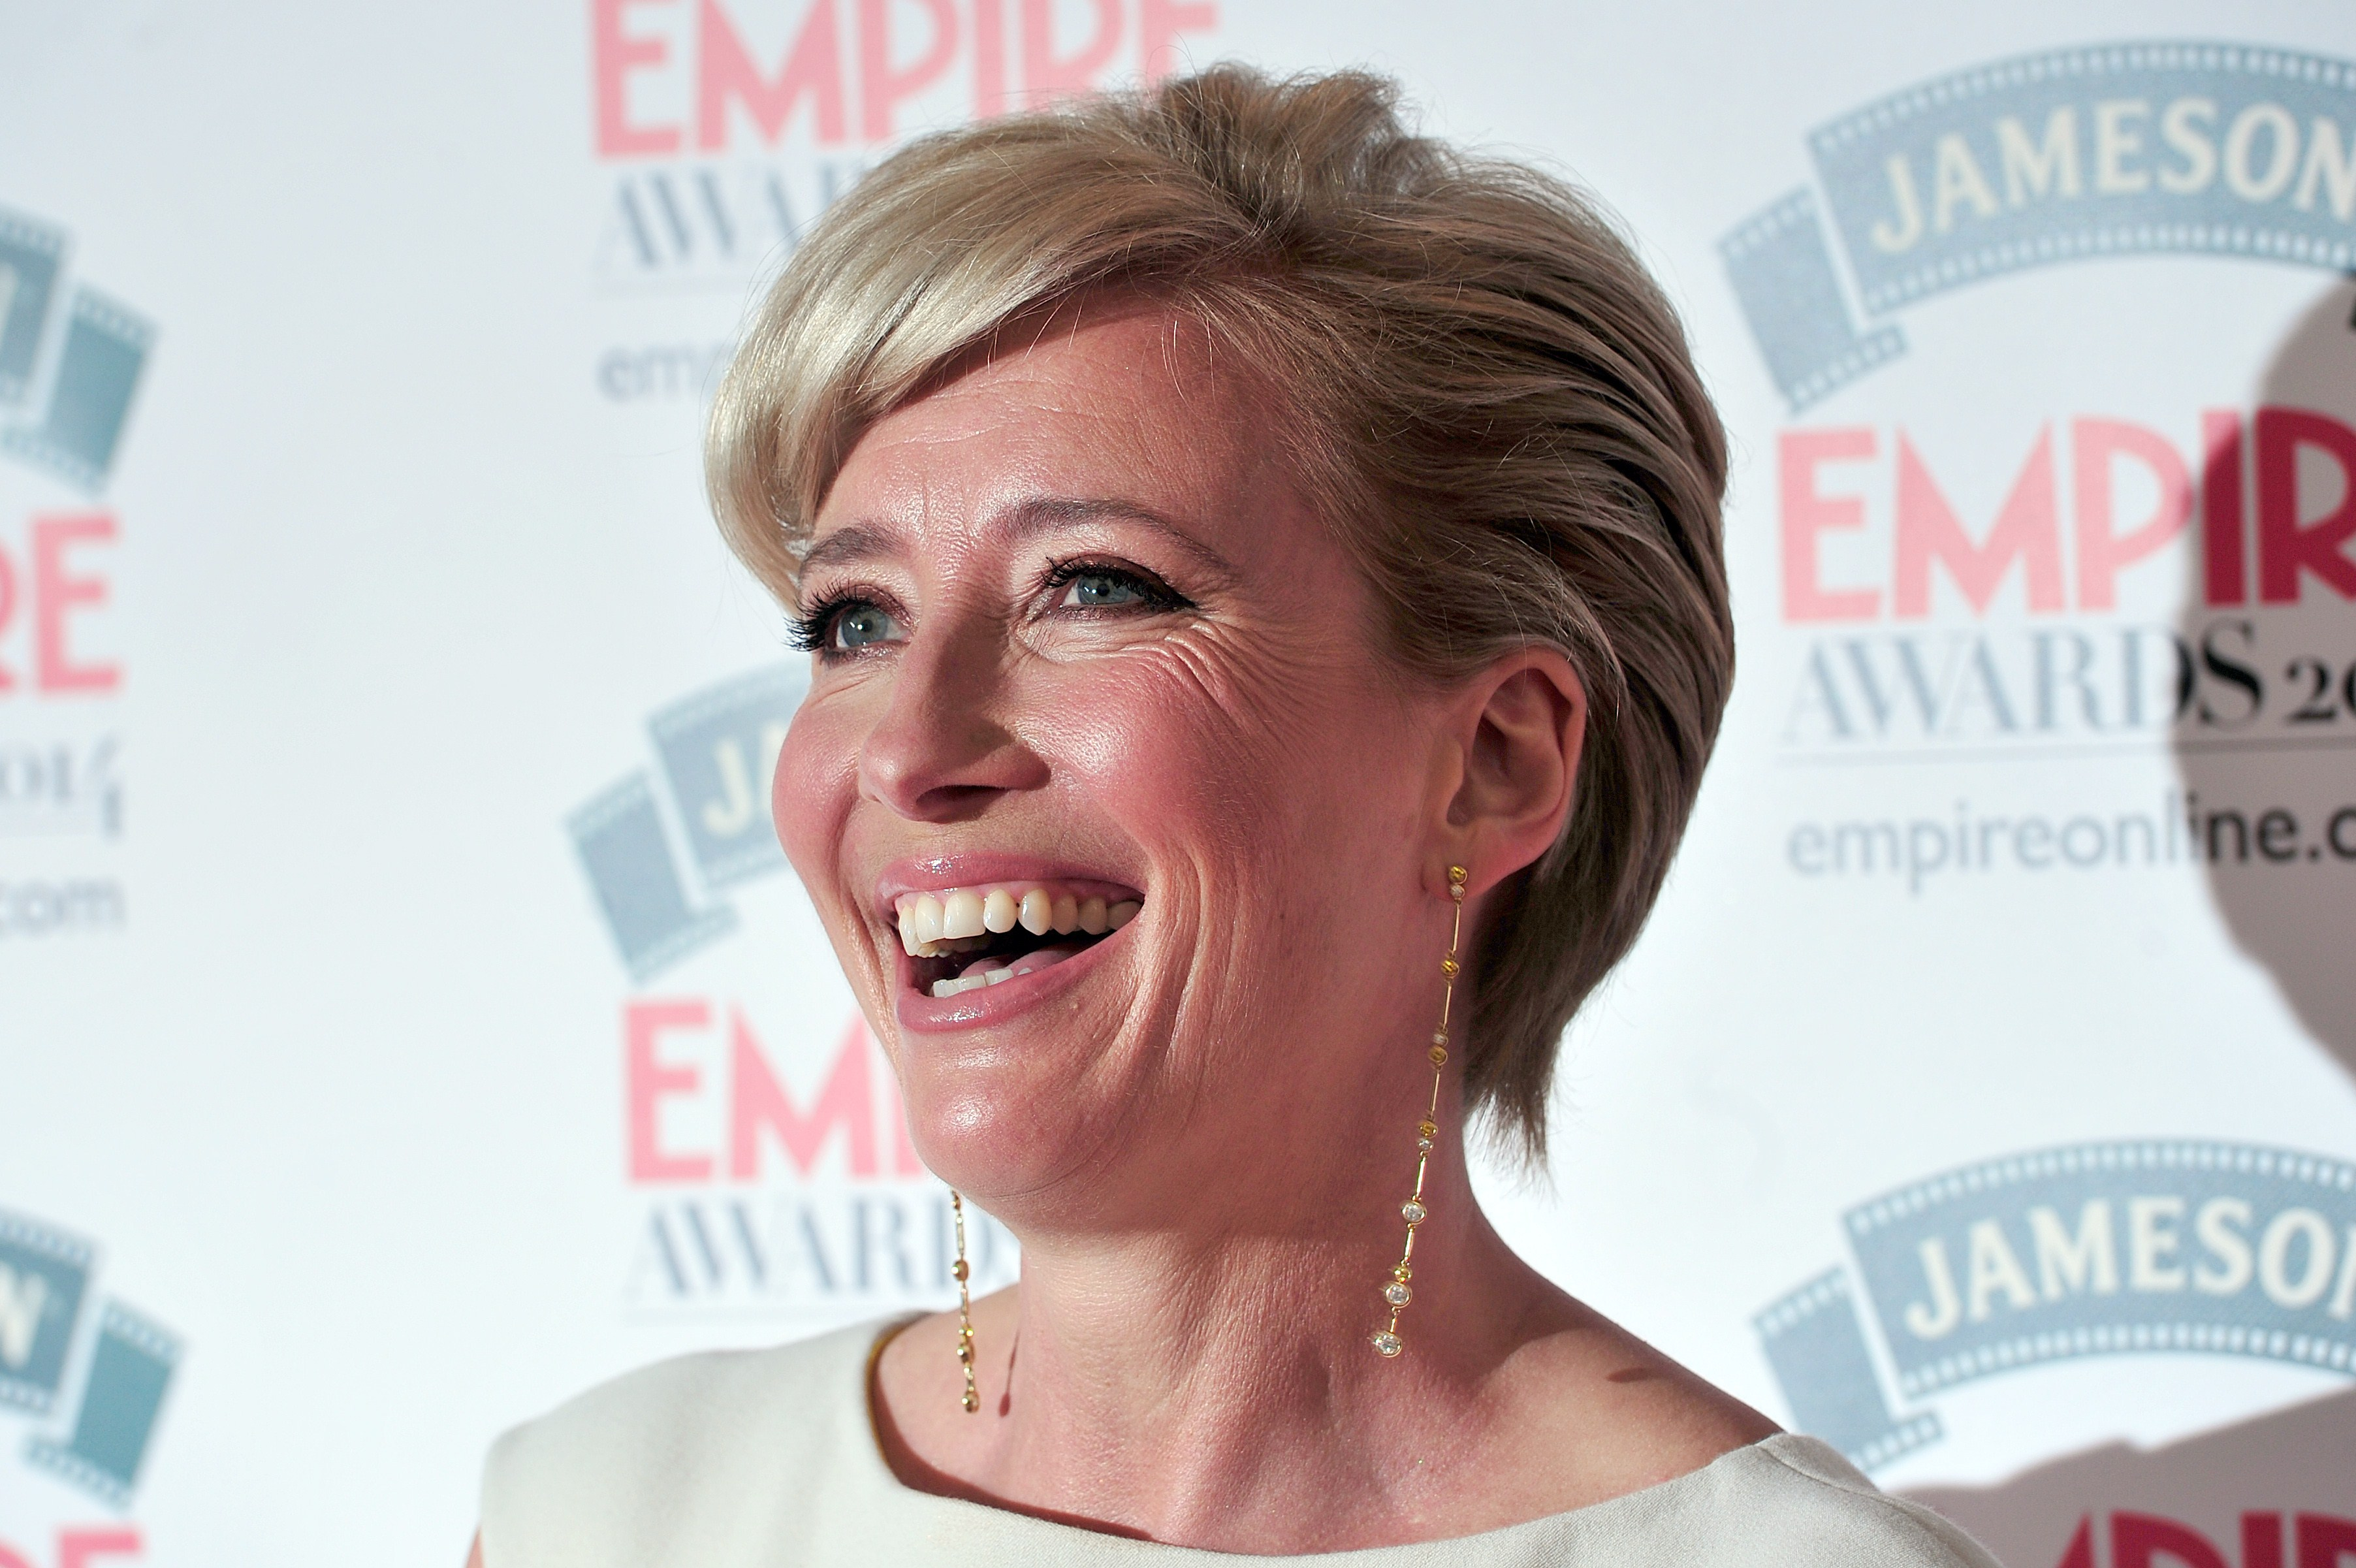 British actress Emma Thompson poses for pictures as she arrives for the 2014 Empire Awards in central London on March 30, 2014.